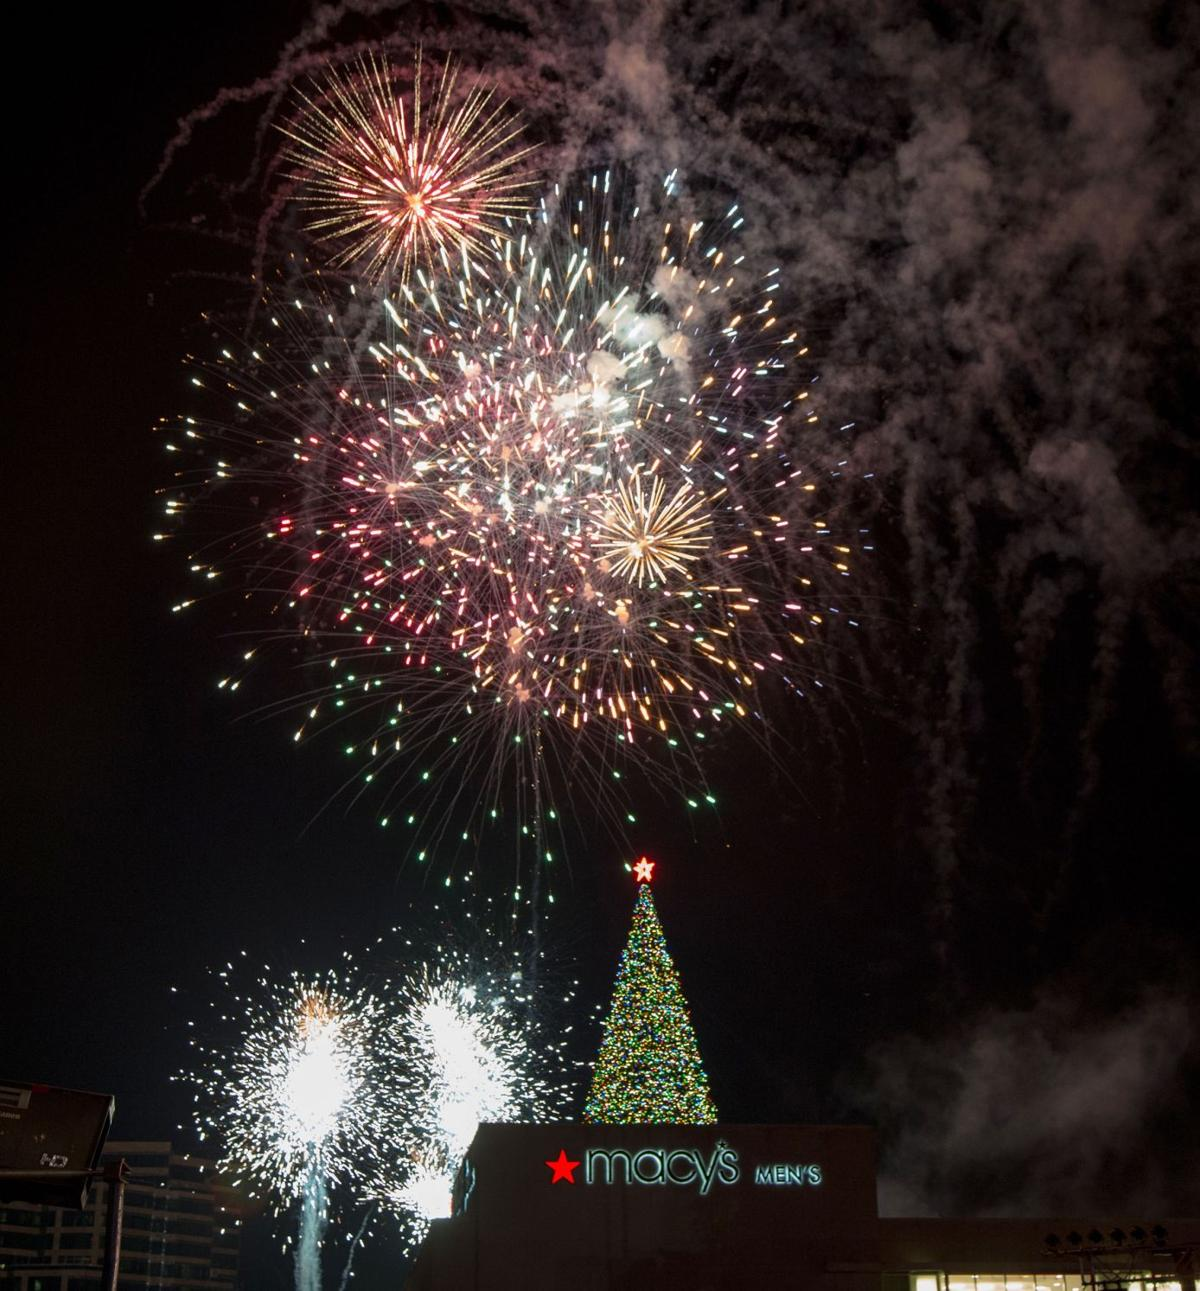 112019_MNS_holiday_events_001 Macy's tree fireworks